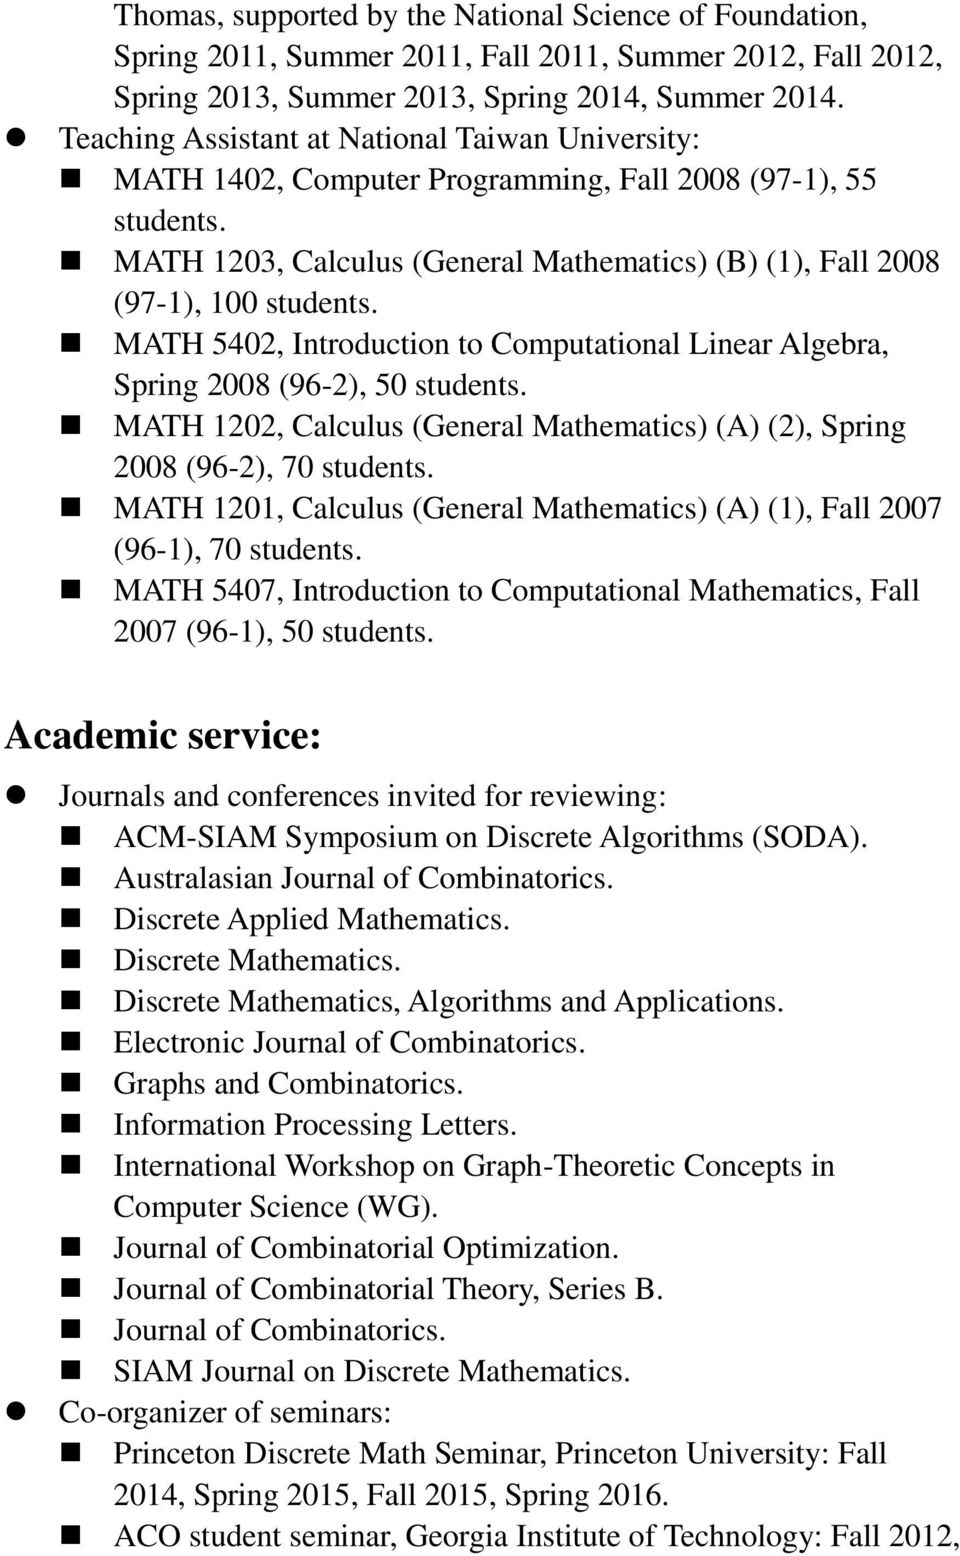 MATH 5402, Introduction to Computational Linear Algebra, Spring 2008 (96-2), 50 students. MATH 1202, Calculus (General Mathematics) (A) (2), Spring 2008 (96-2), 70 students.